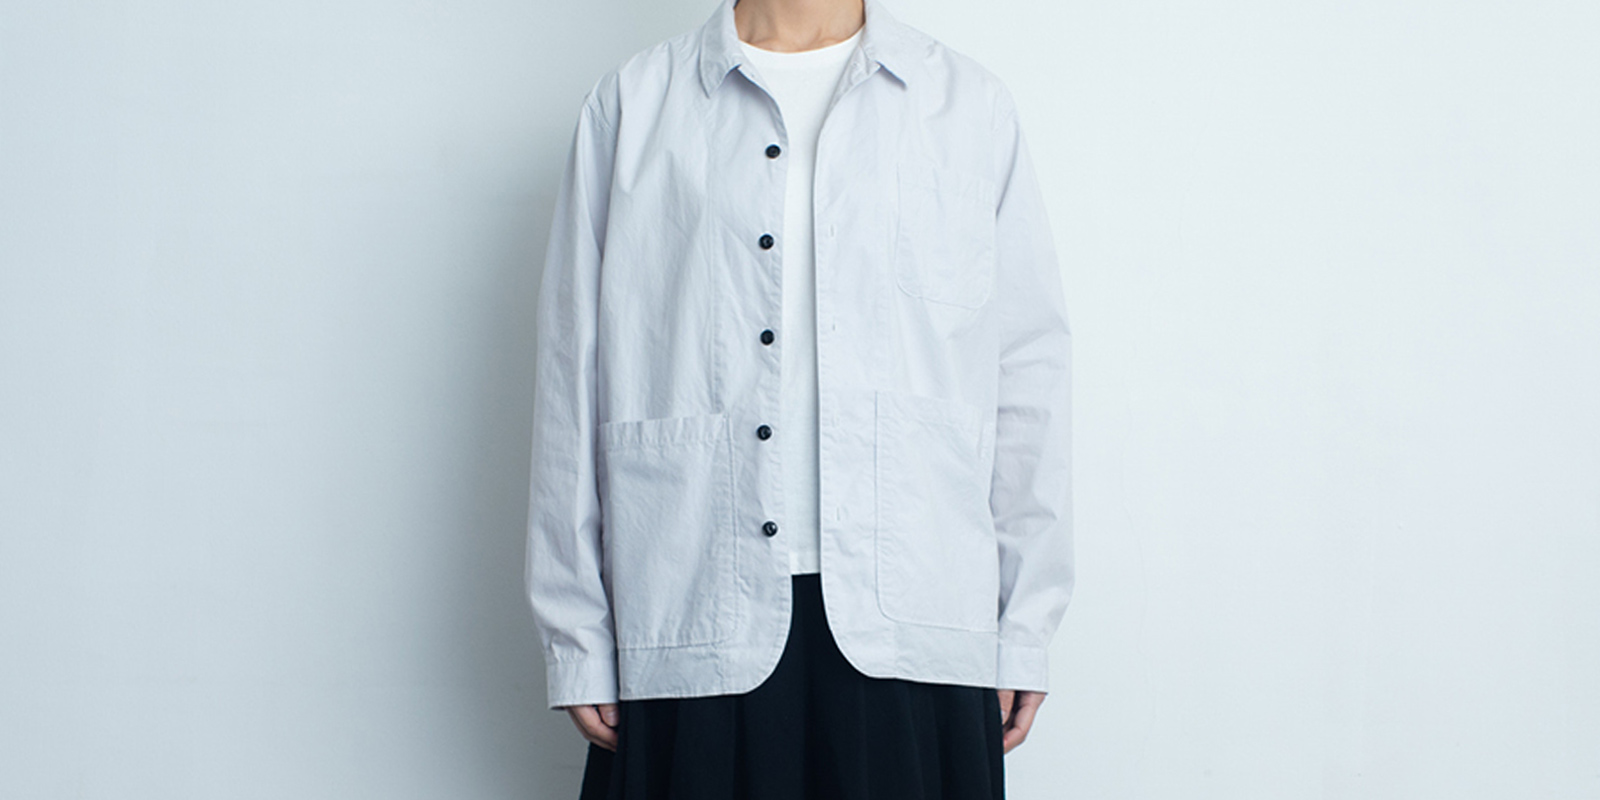 d 202 BACK POCKET SHIRT・アイスブルー・S